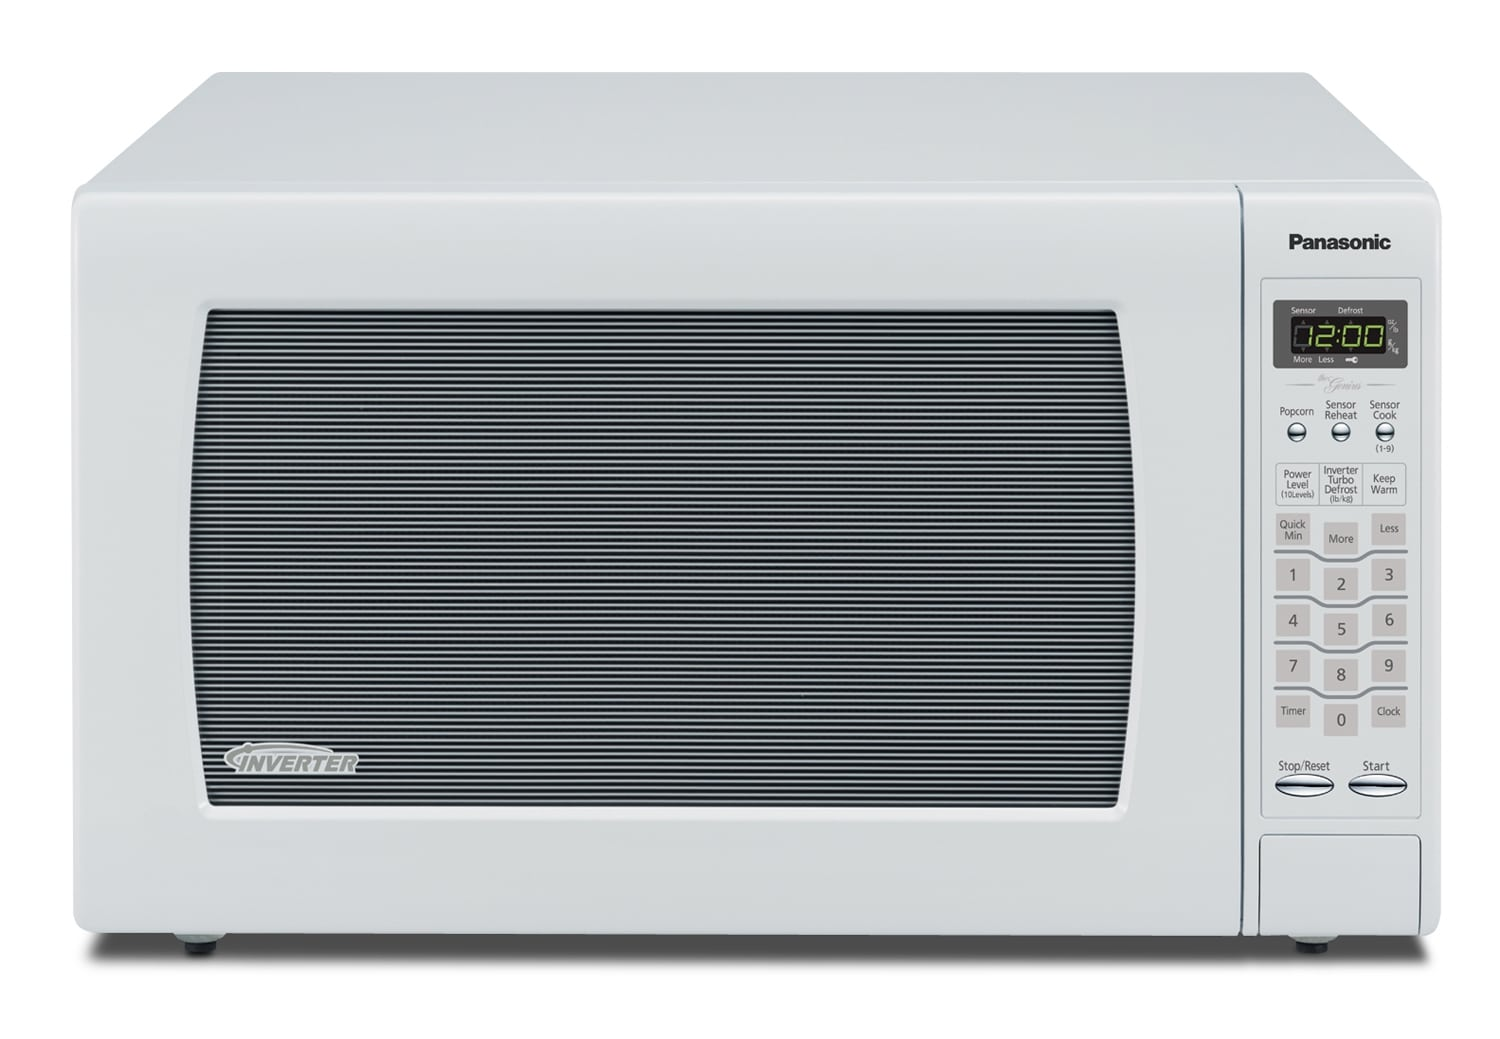 Cooking Products - Panasonic White Microwave (2.2 Cu. Ft.) - NNSN968W